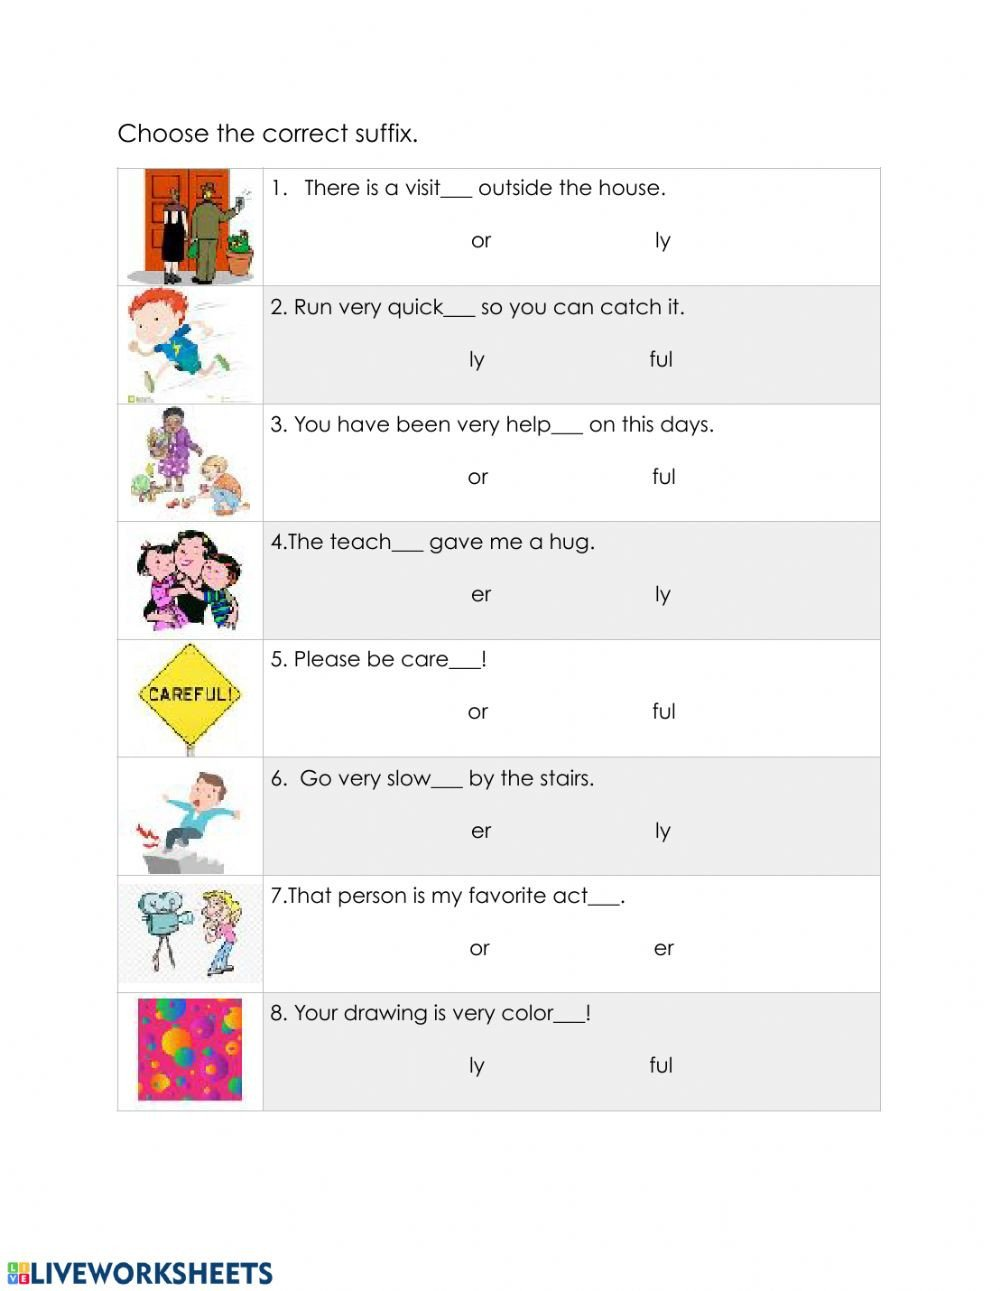 Suffix Ly Worksheets Suffixes Er or Ly and Ful Interactive Worksheet